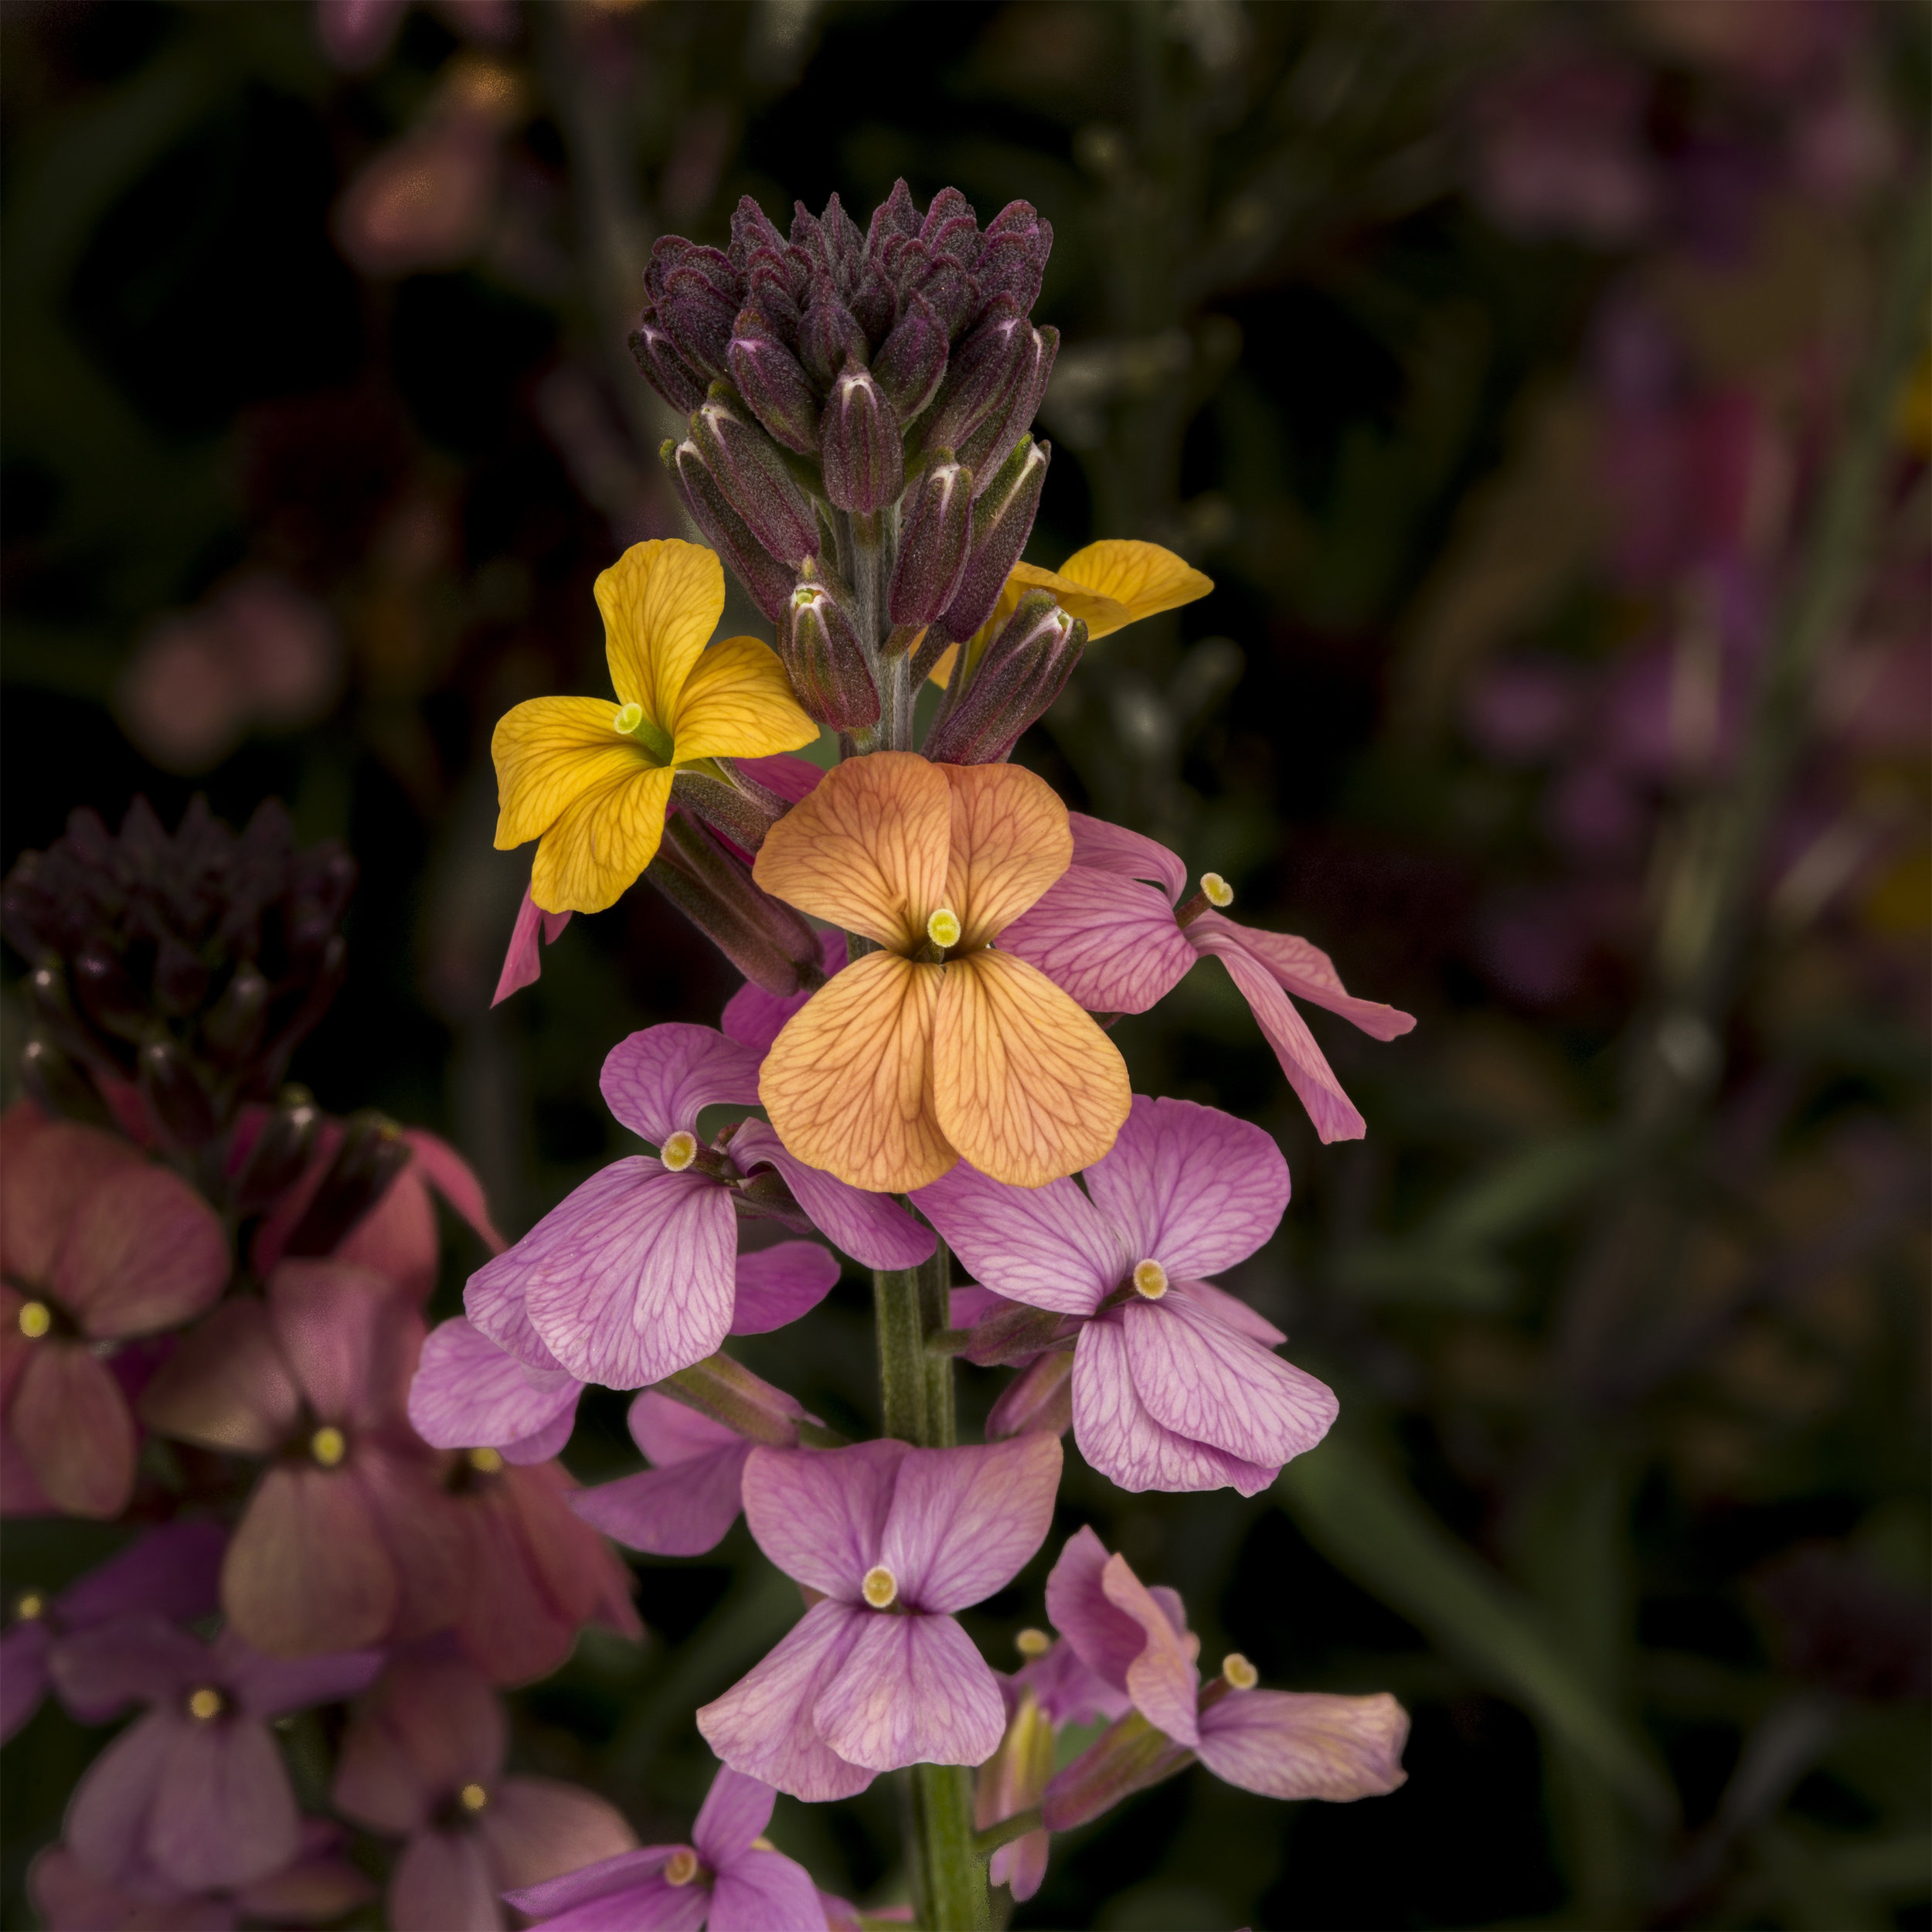 HR_Vegetative_Erysimum_Super_Bowl™_Super_Bowl™_Sunset_70028052.jpg